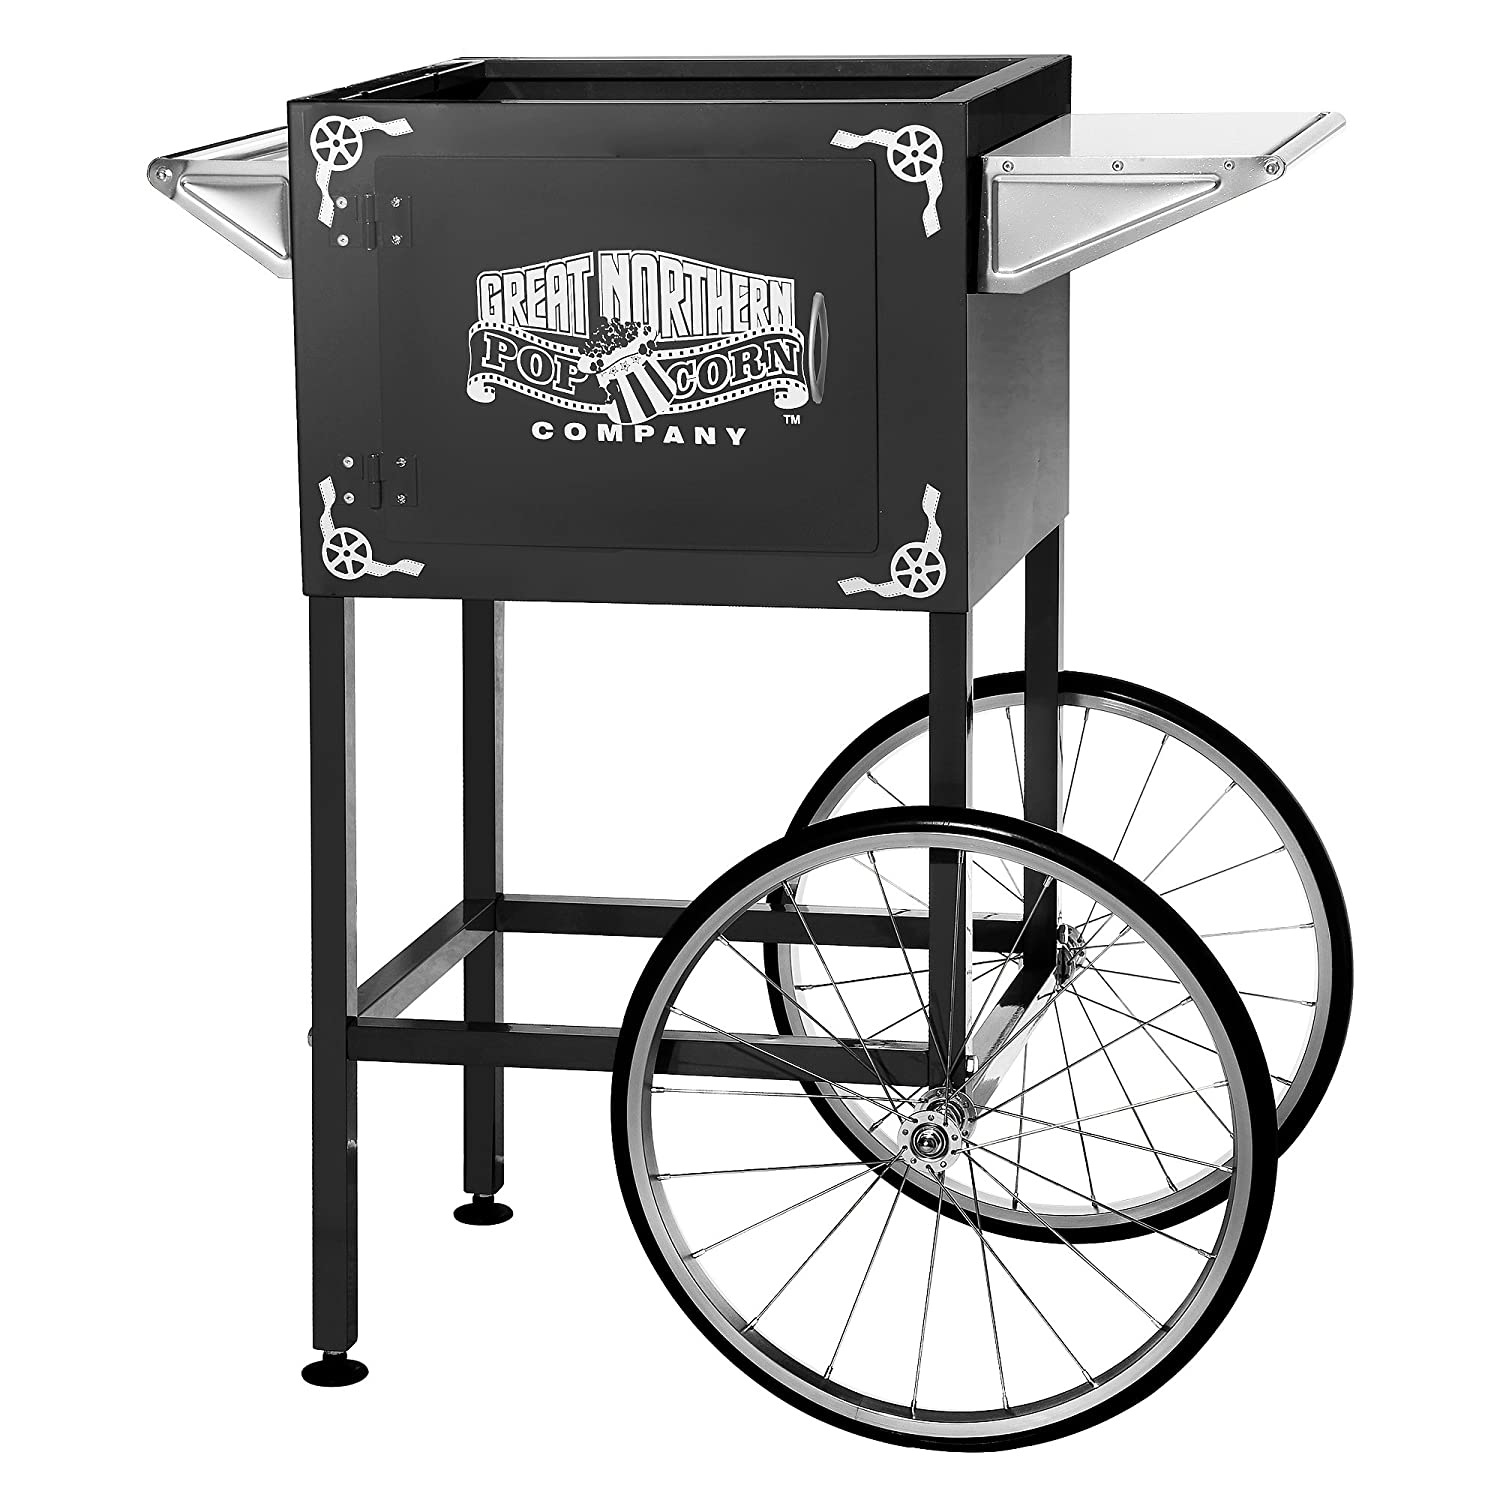 6401 Black Replacement Cart for Larger Lincoln Style Great Northern Popcorn Machines